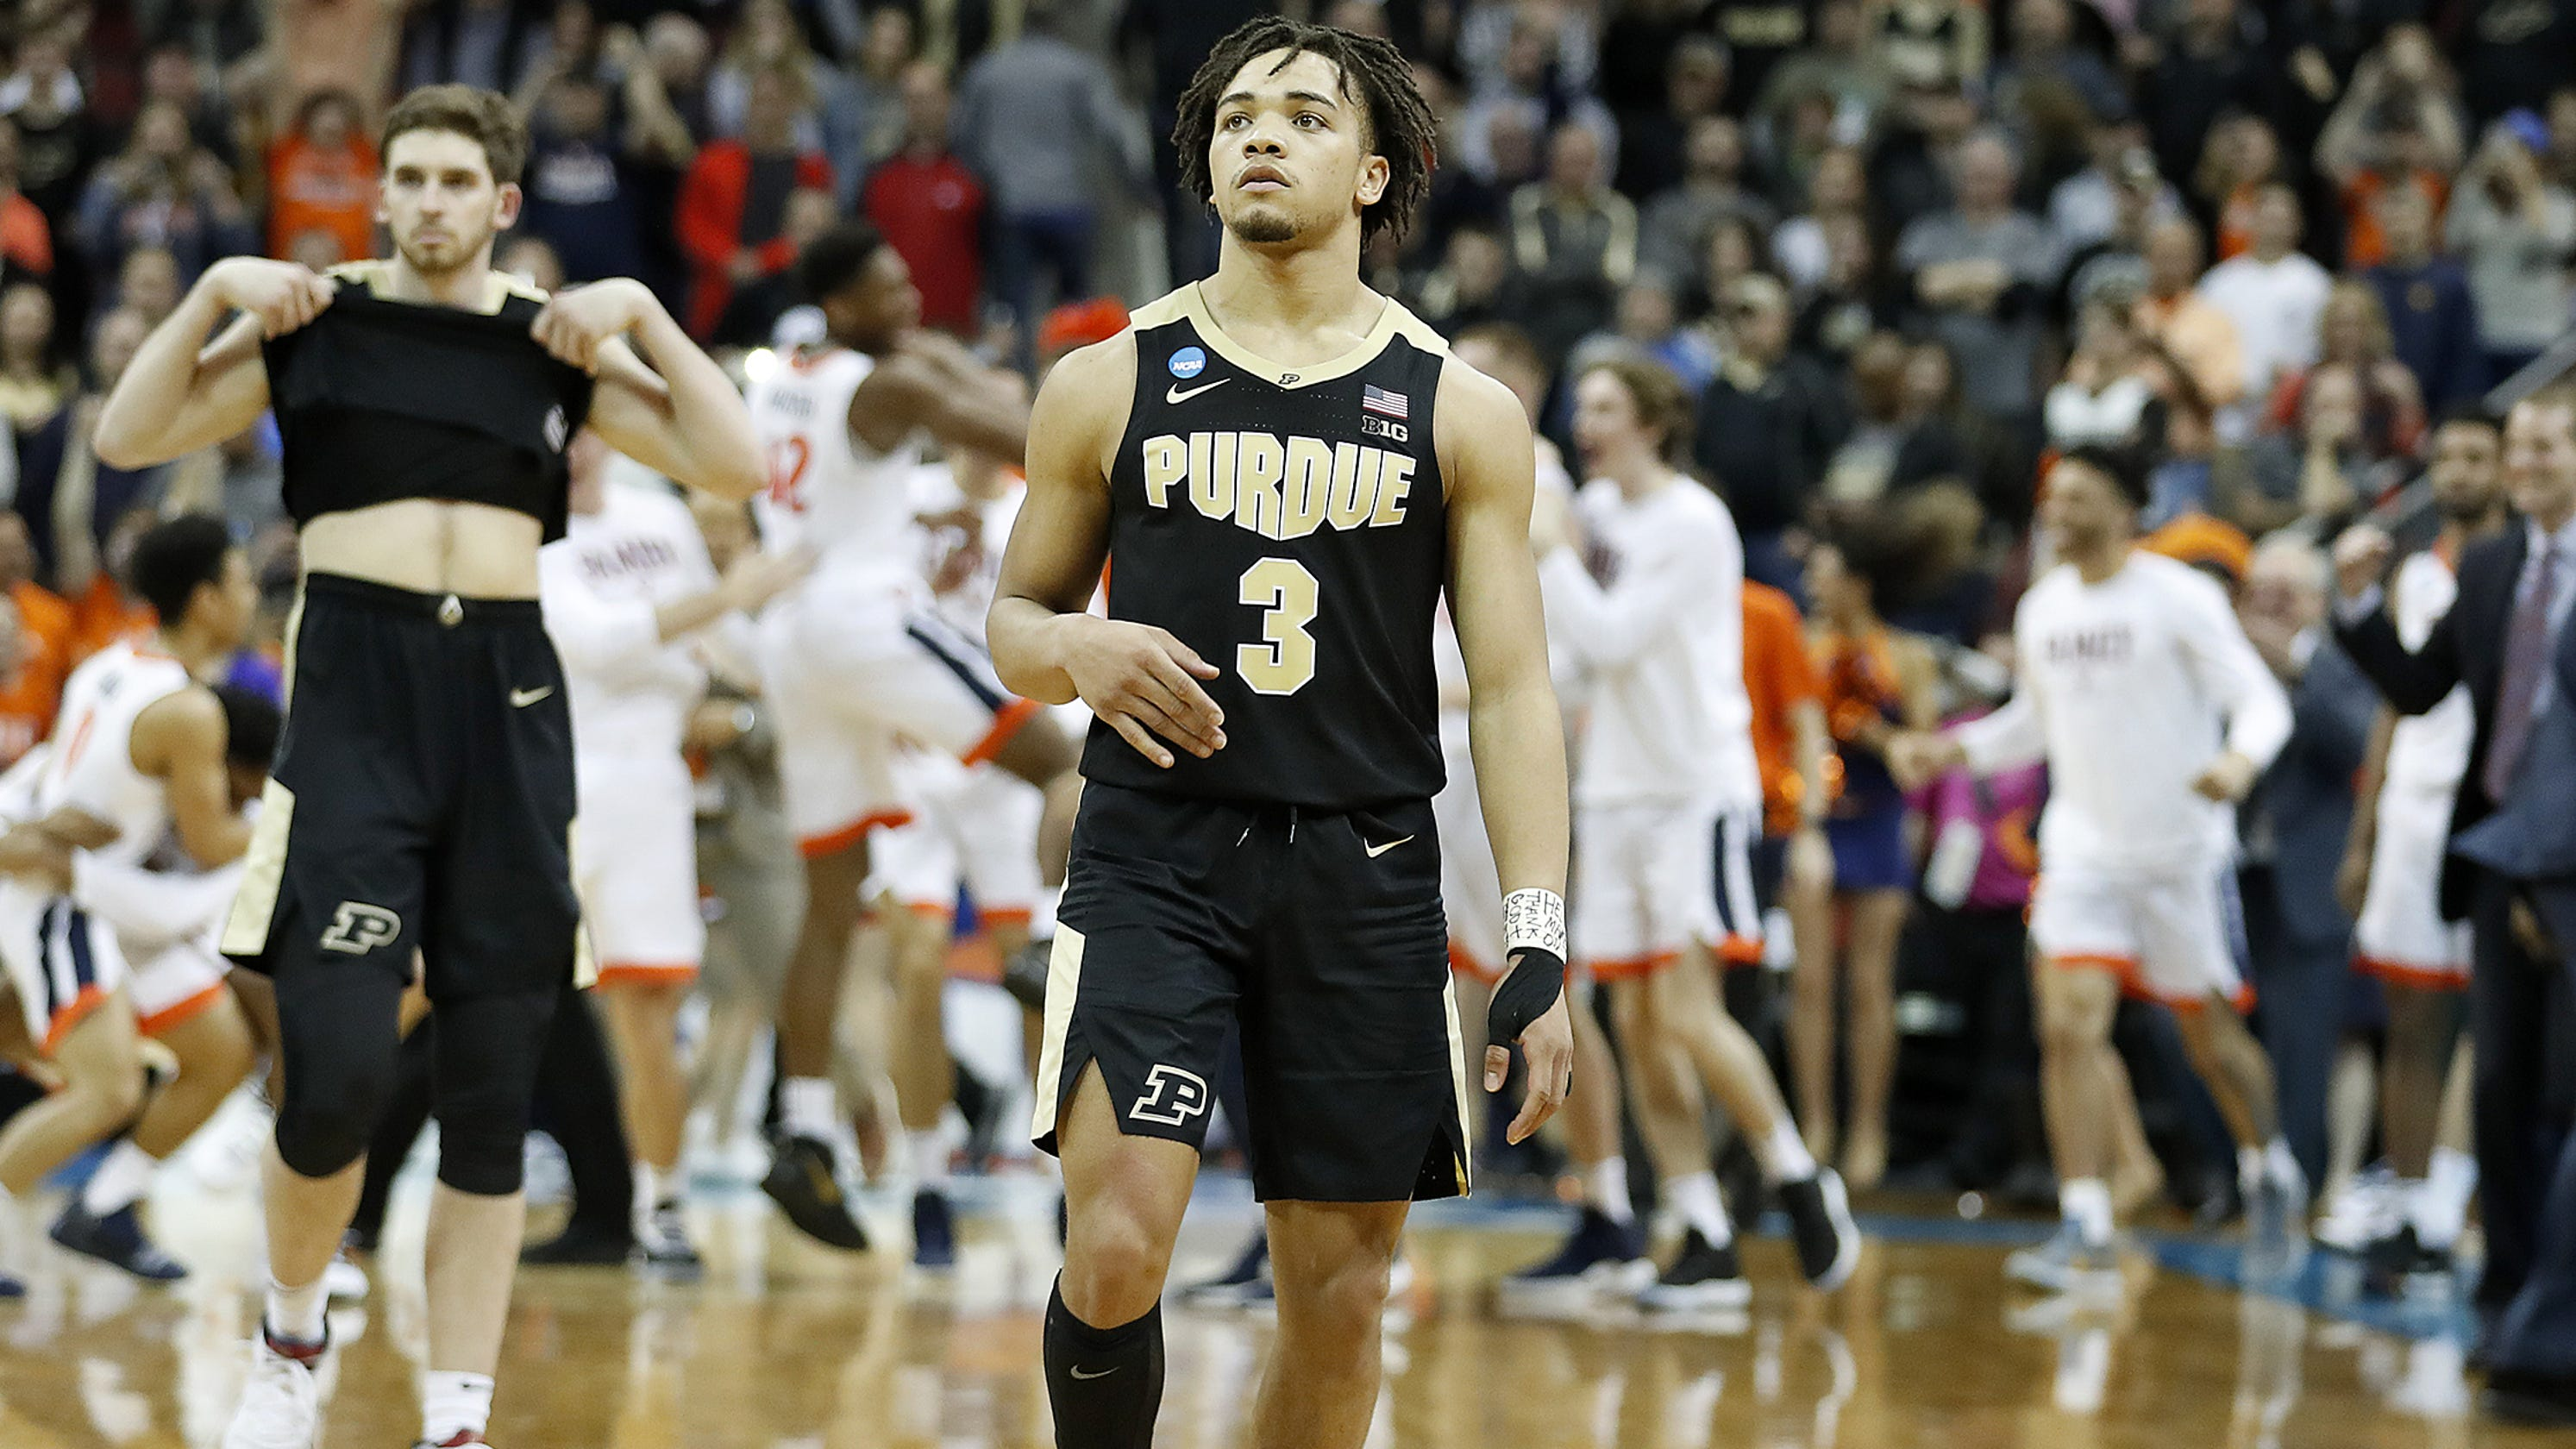 Purdue Carsen Edwards Fall Second Short Of Final Four In Cruel